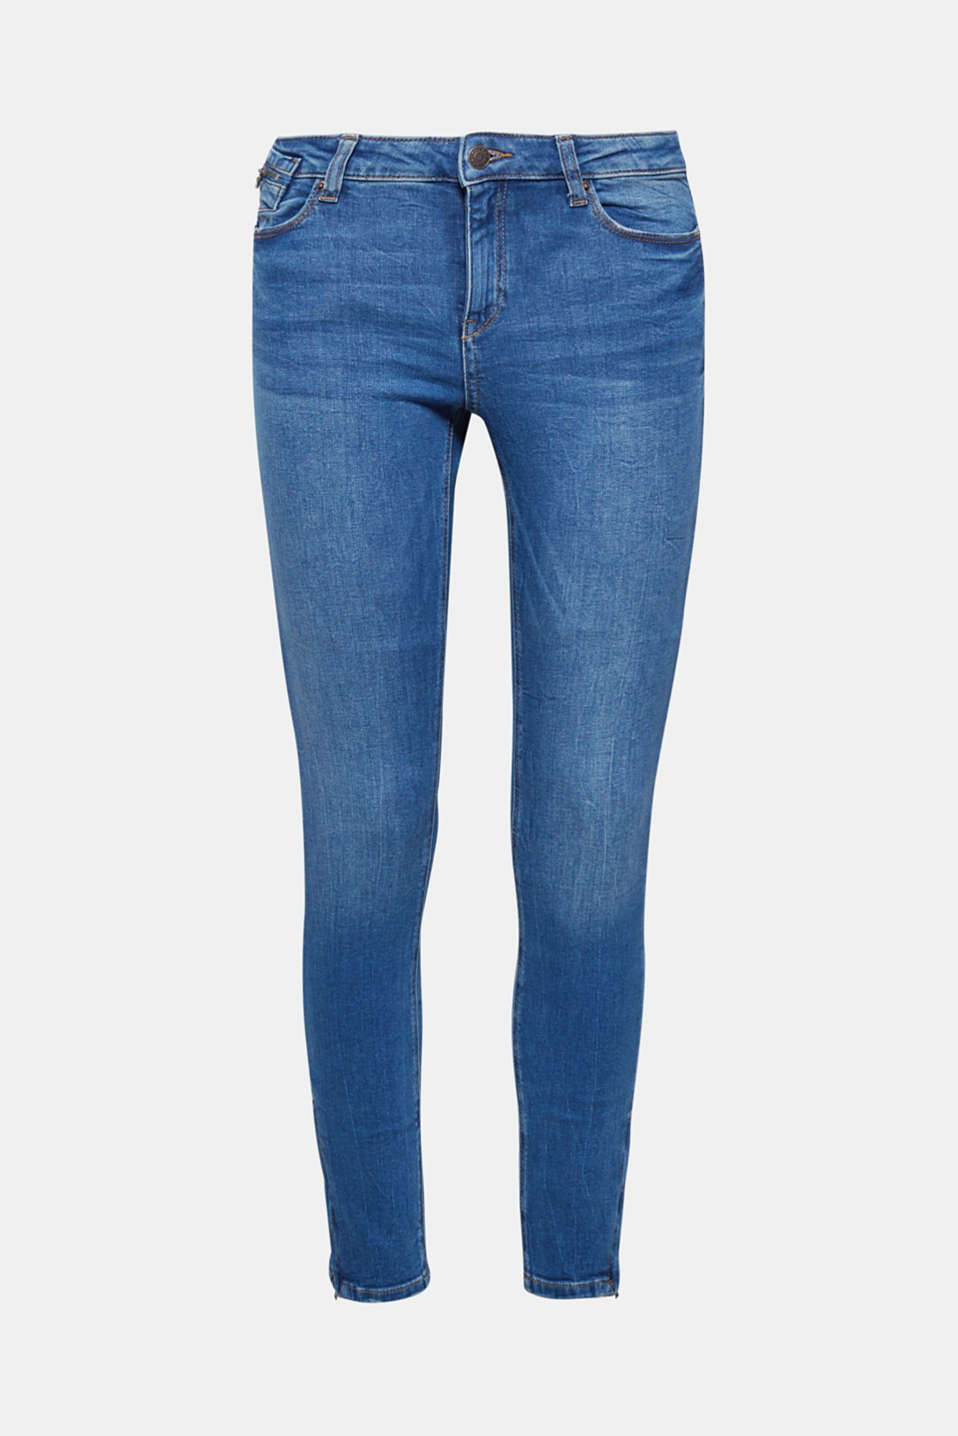 The tight fit and the zips on the coin pocket and on the leg hems give these stretchy jeans their cool look!